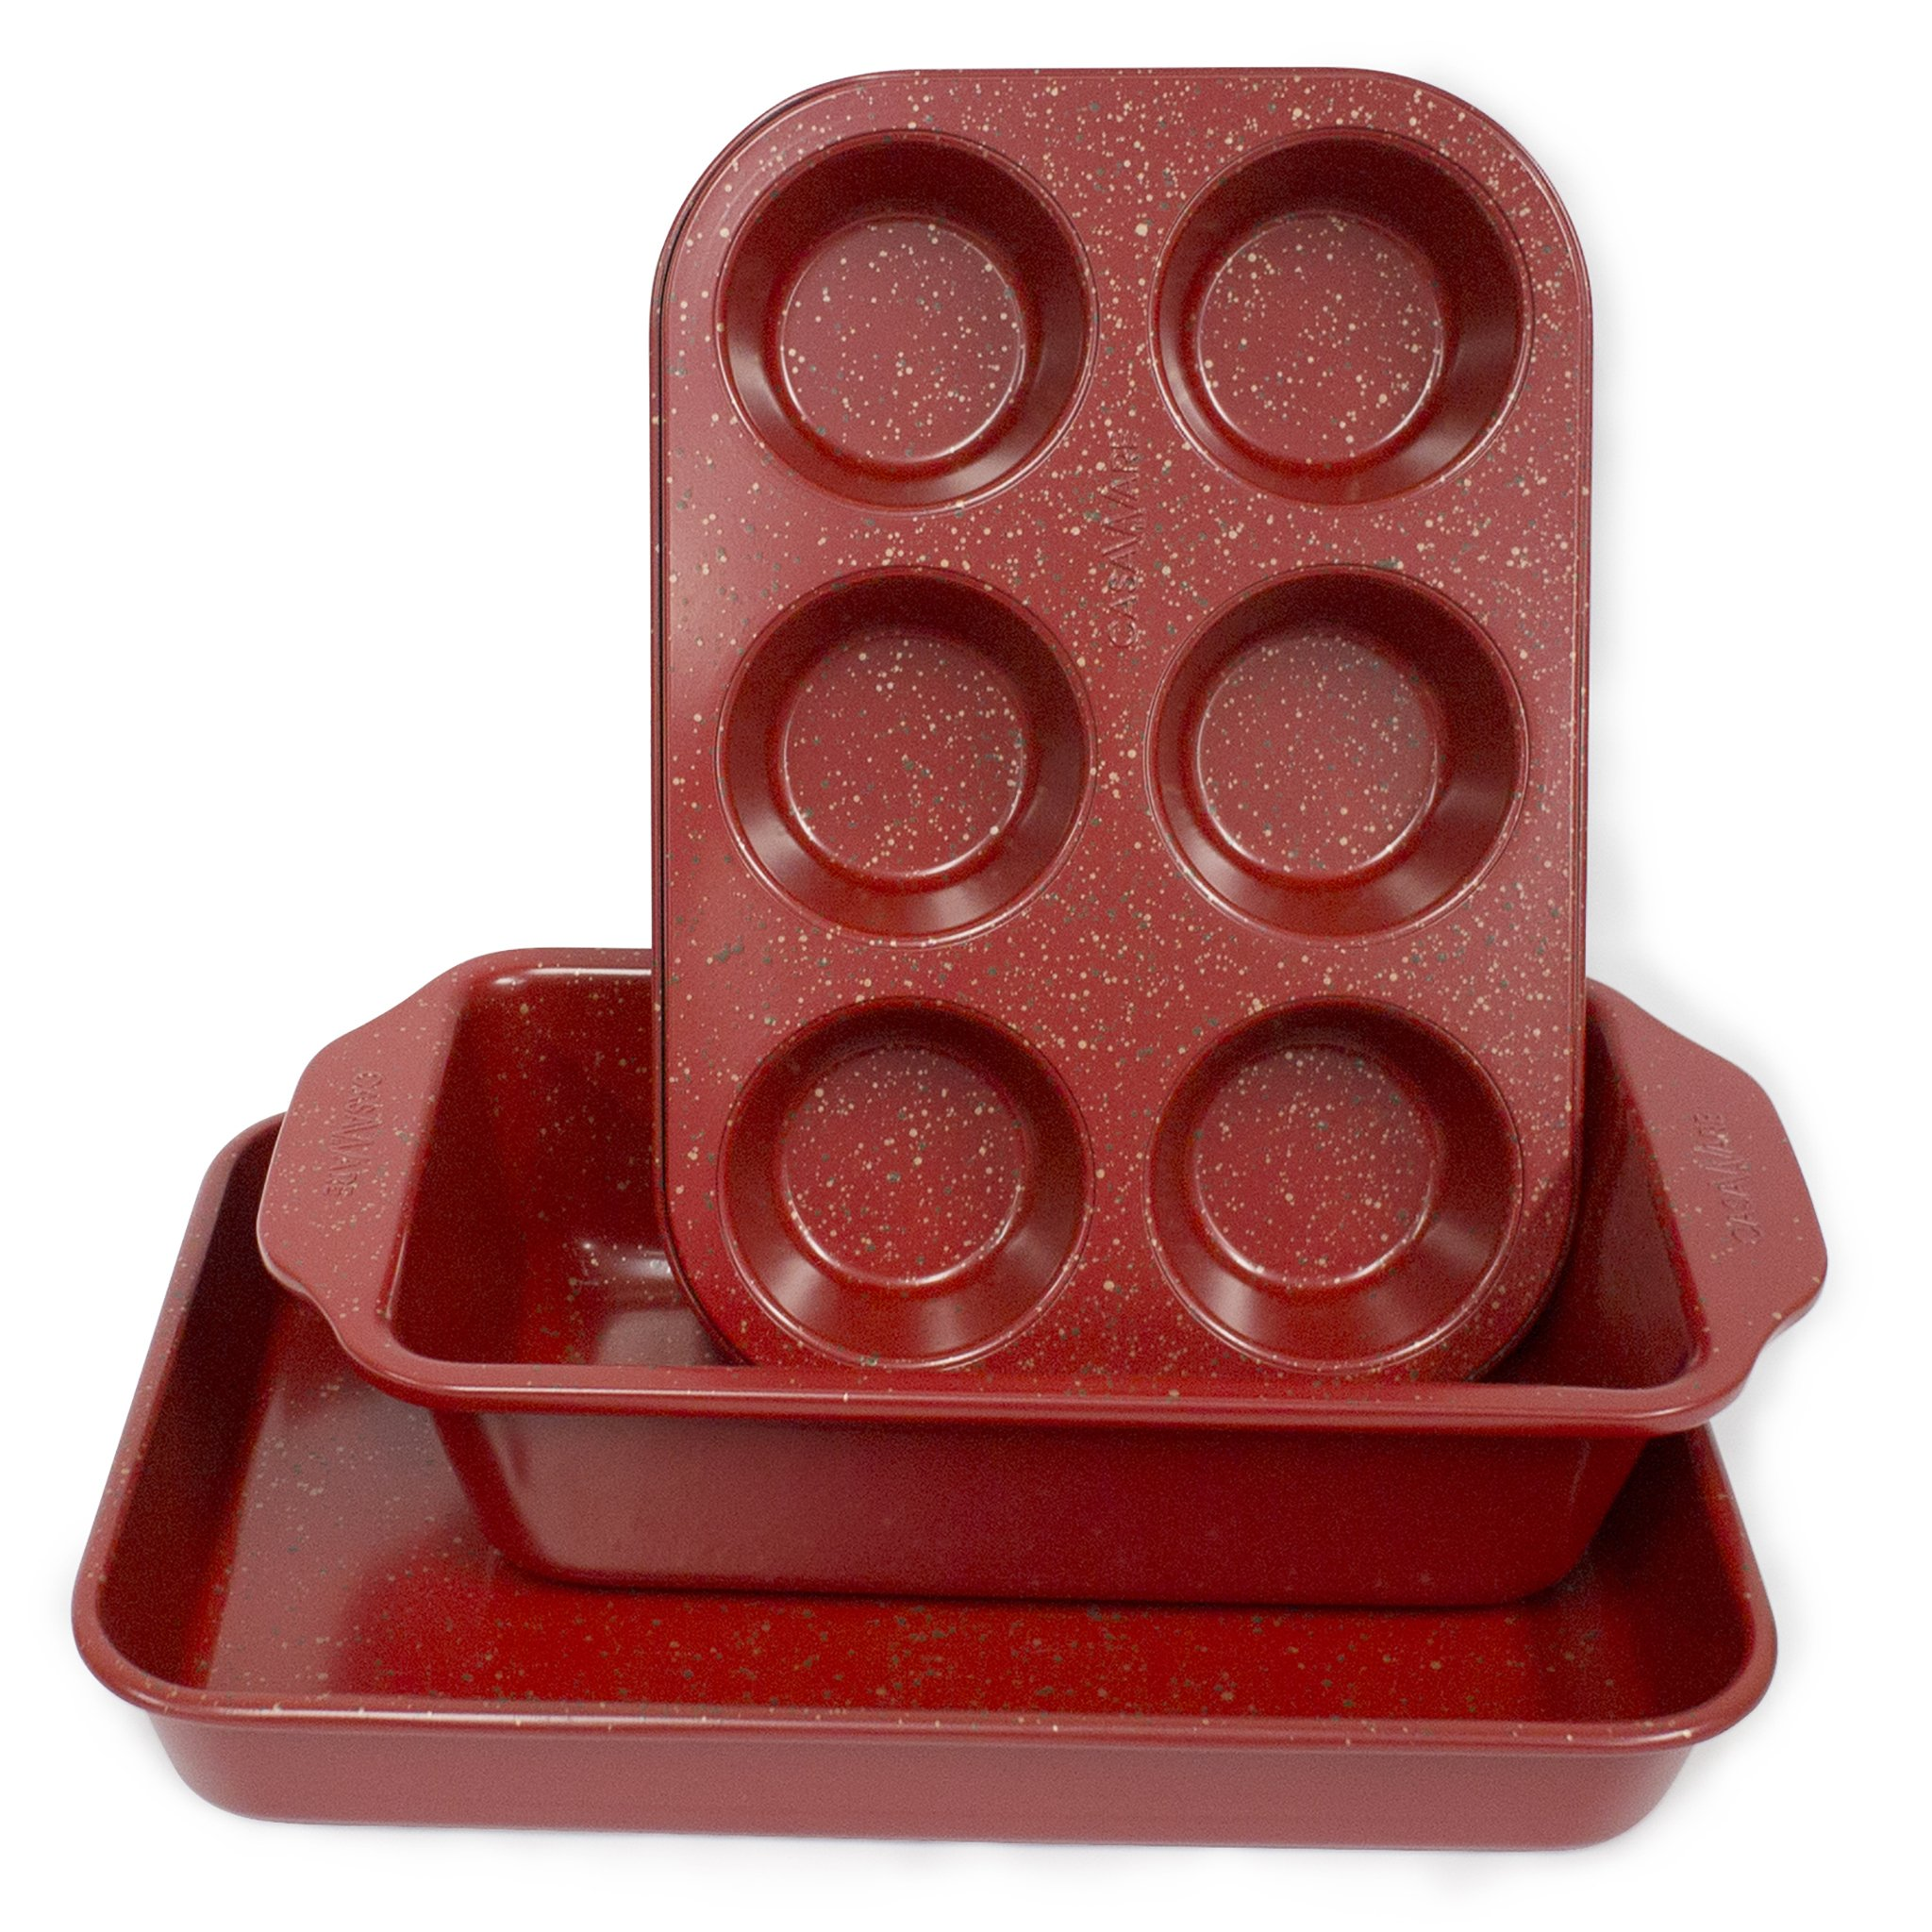 casaWare Toaster Oven 3-Piece Set (Red Granite) by casaWare